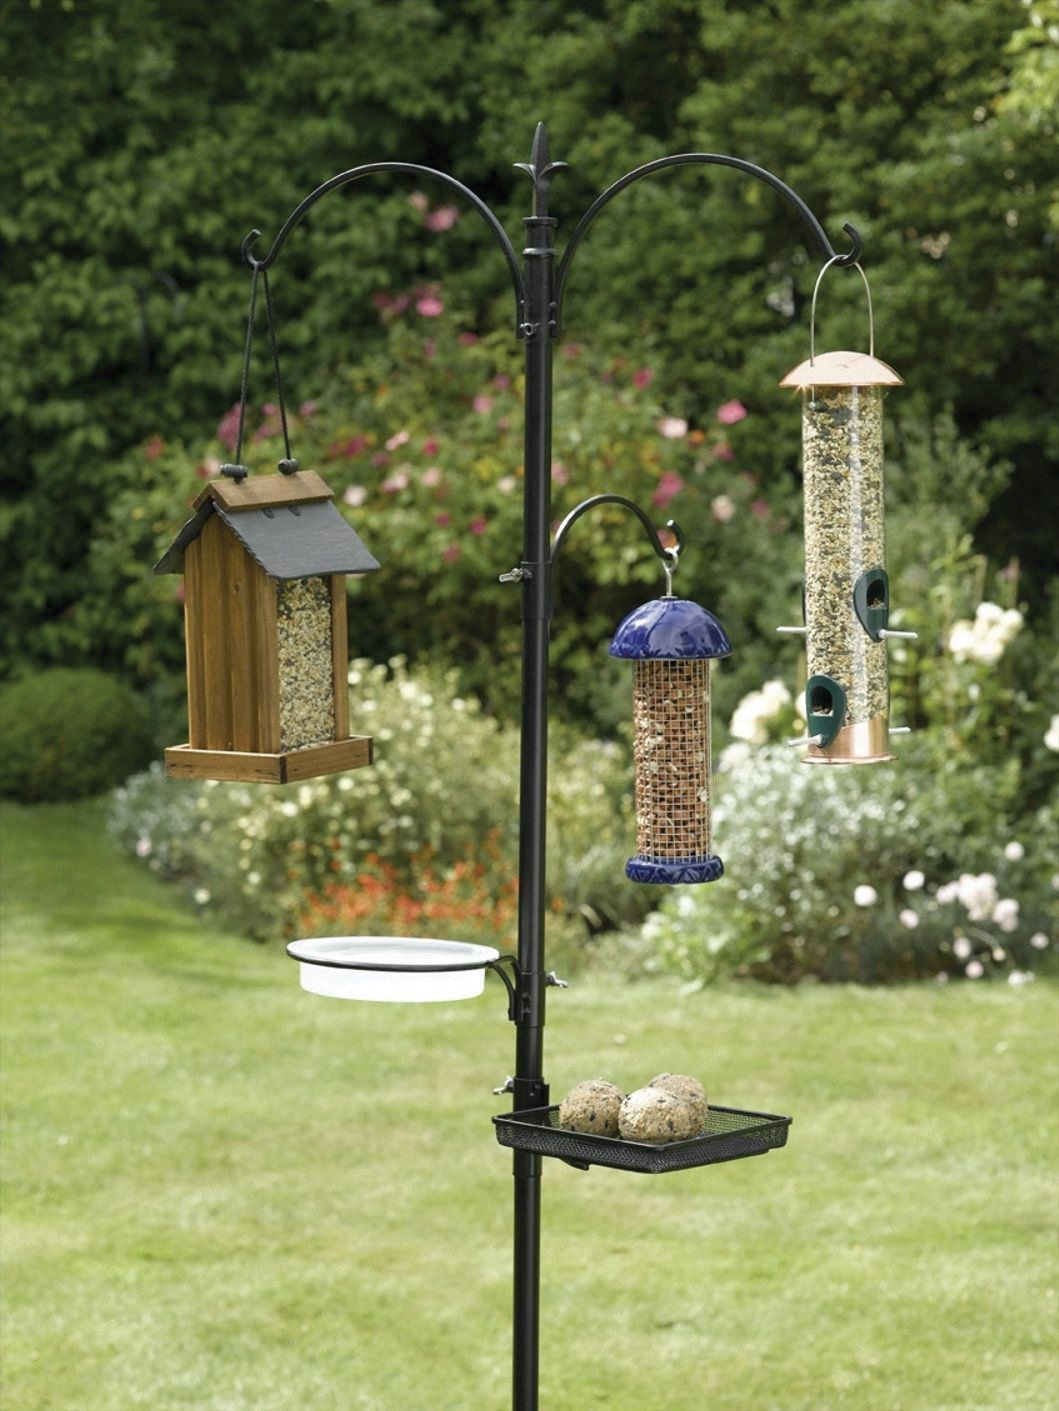 Gardman Usa 0280019 Wild Bird Feeding Kit Feeders Patio Lawn Garden